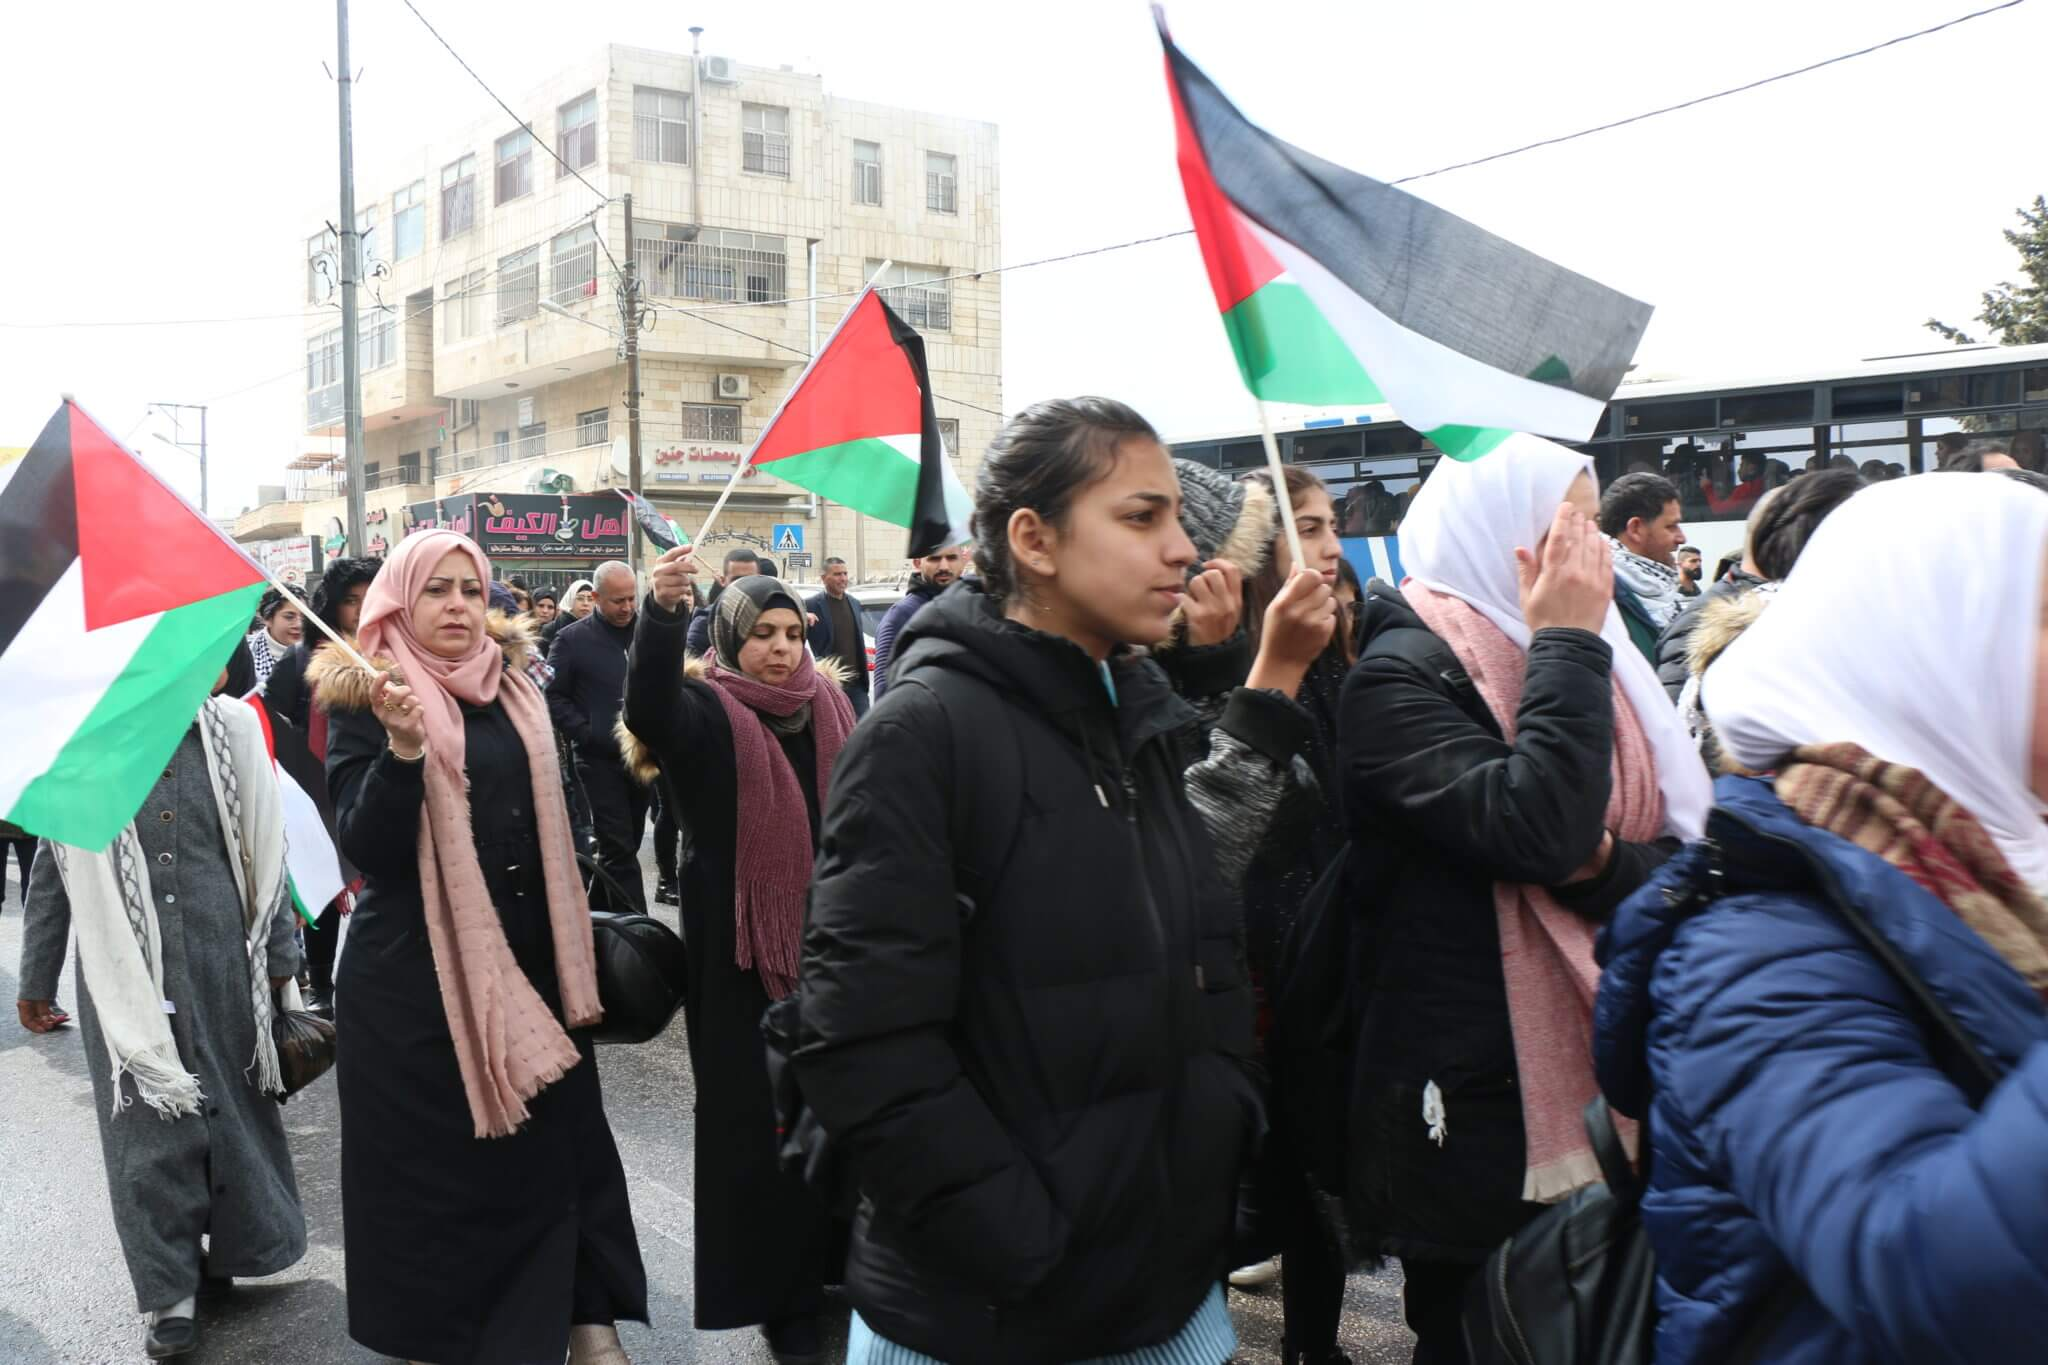 Palestinian women protesting in Bethlehem against the US peace plan (Photo: Yumna Patel)